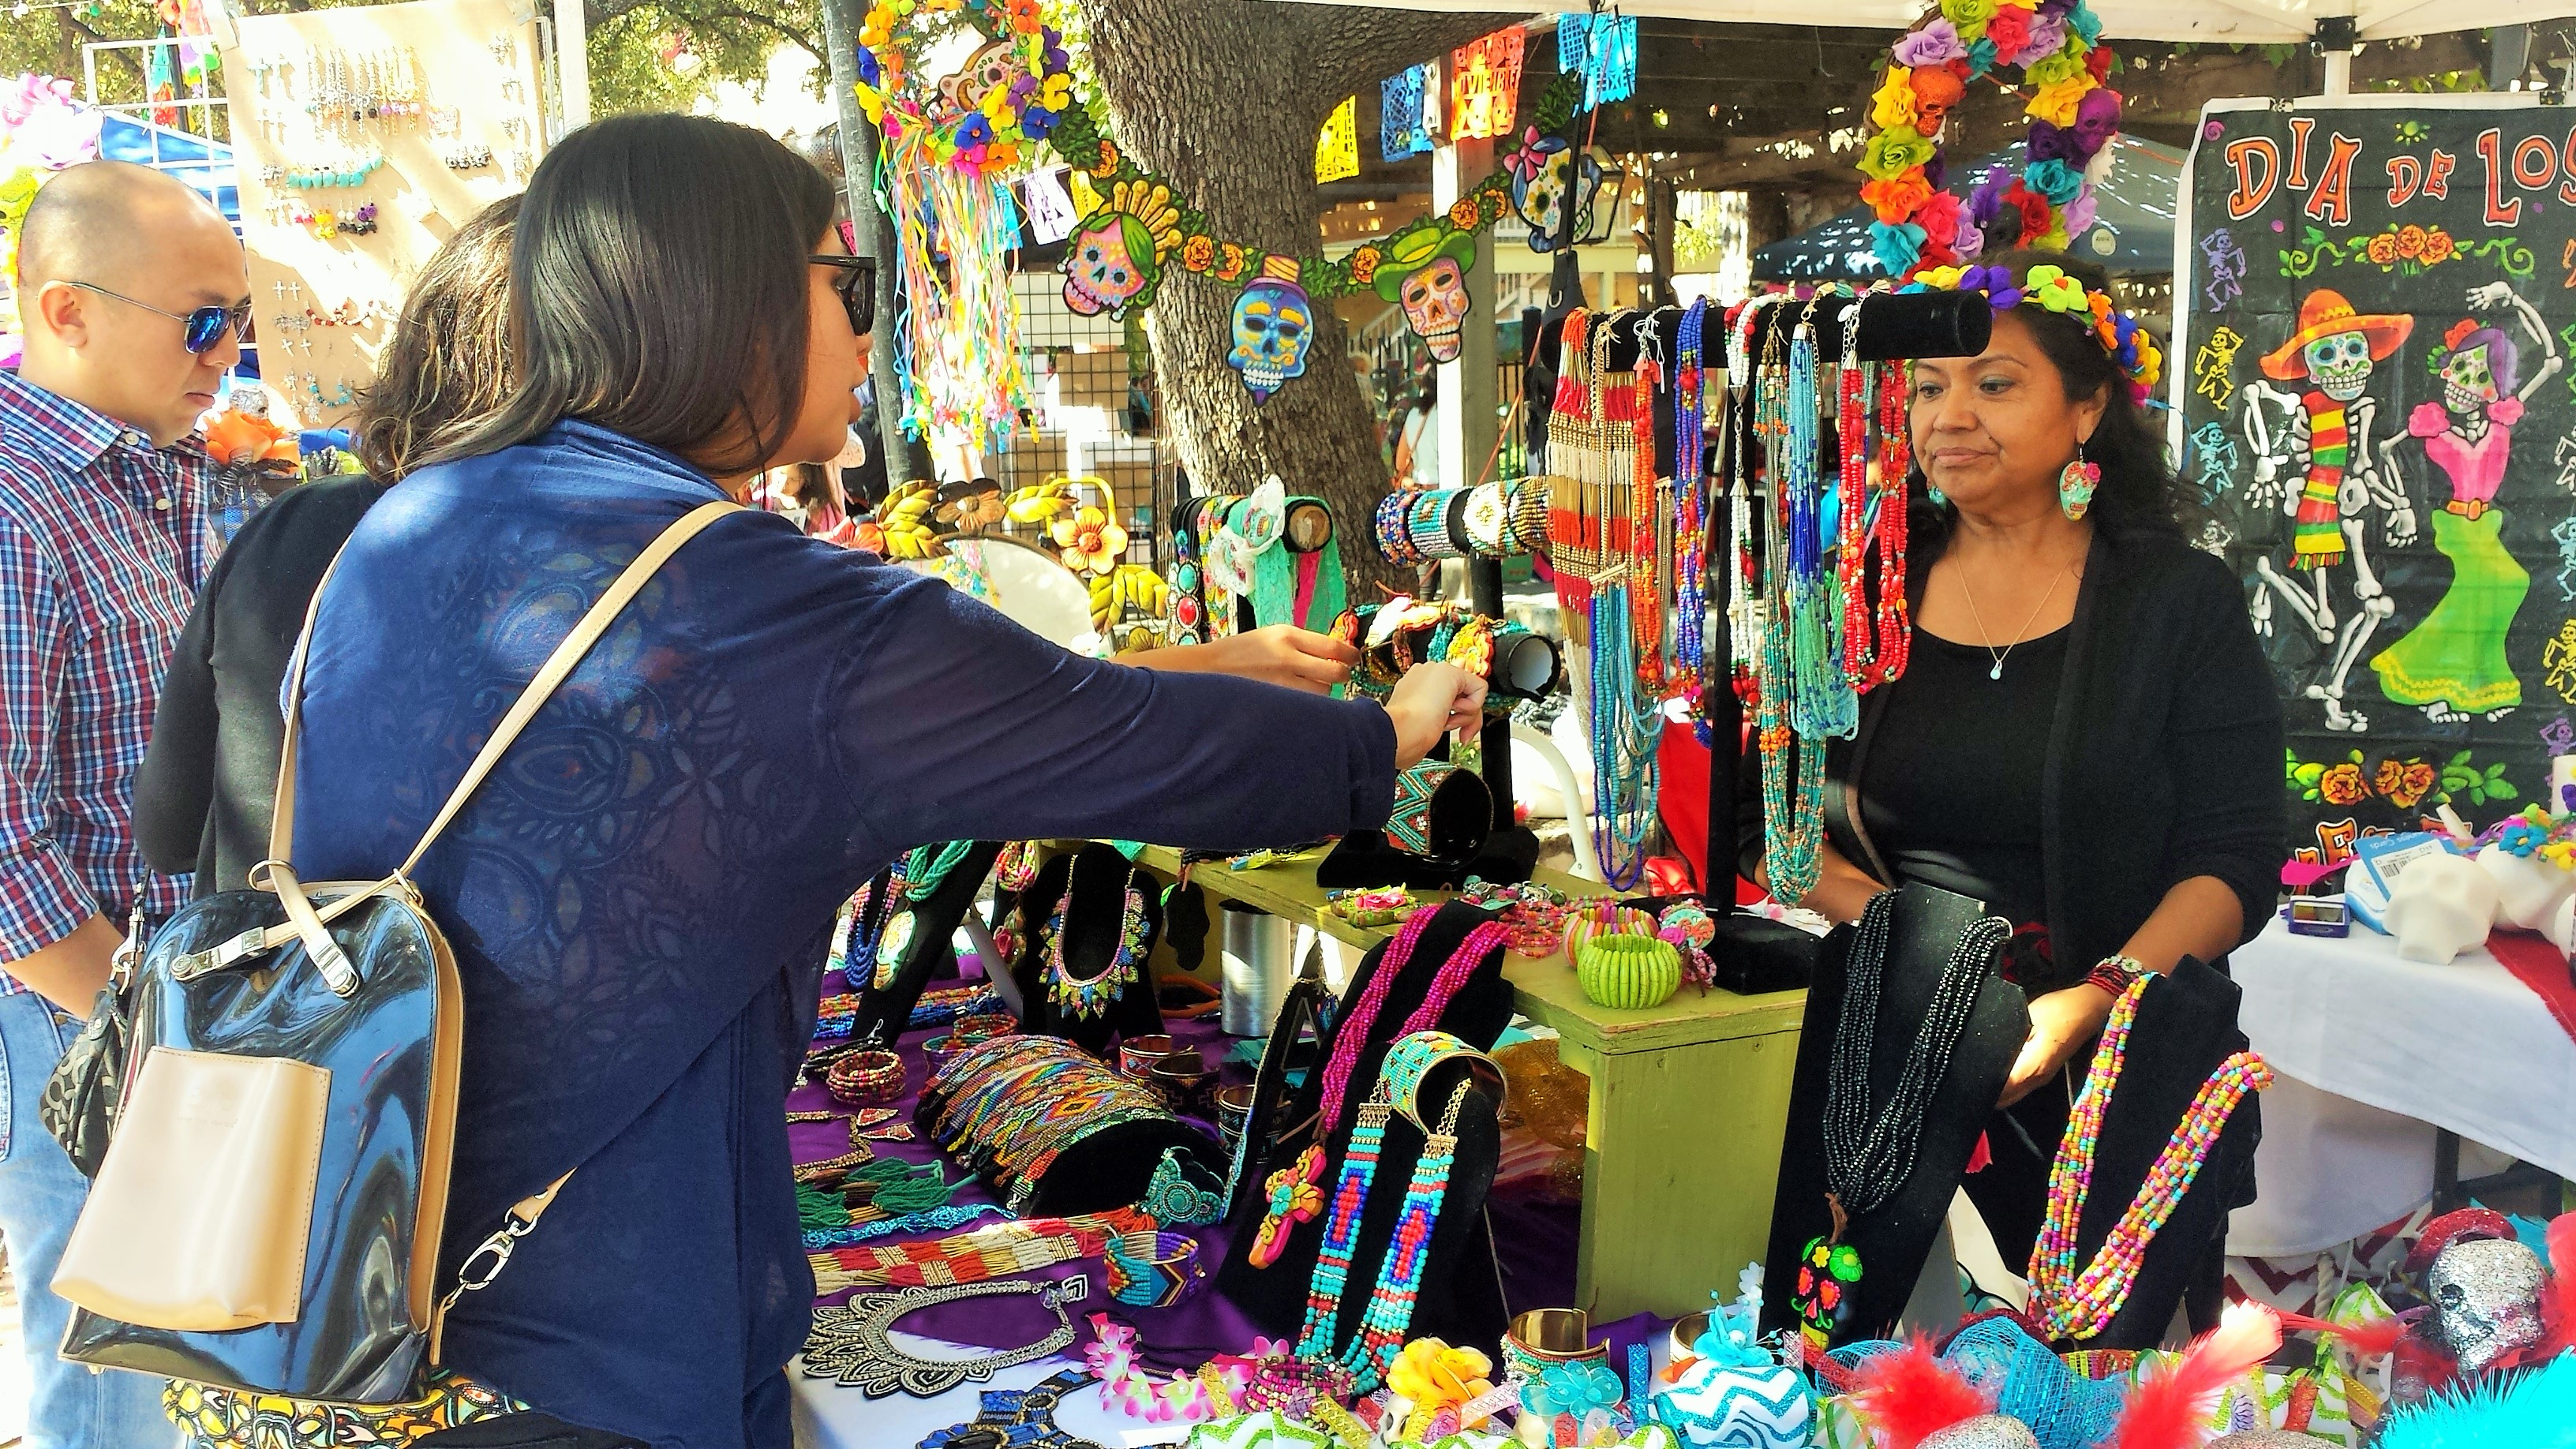 day of the dead essay day of the dead in latin america honors loved ones photos